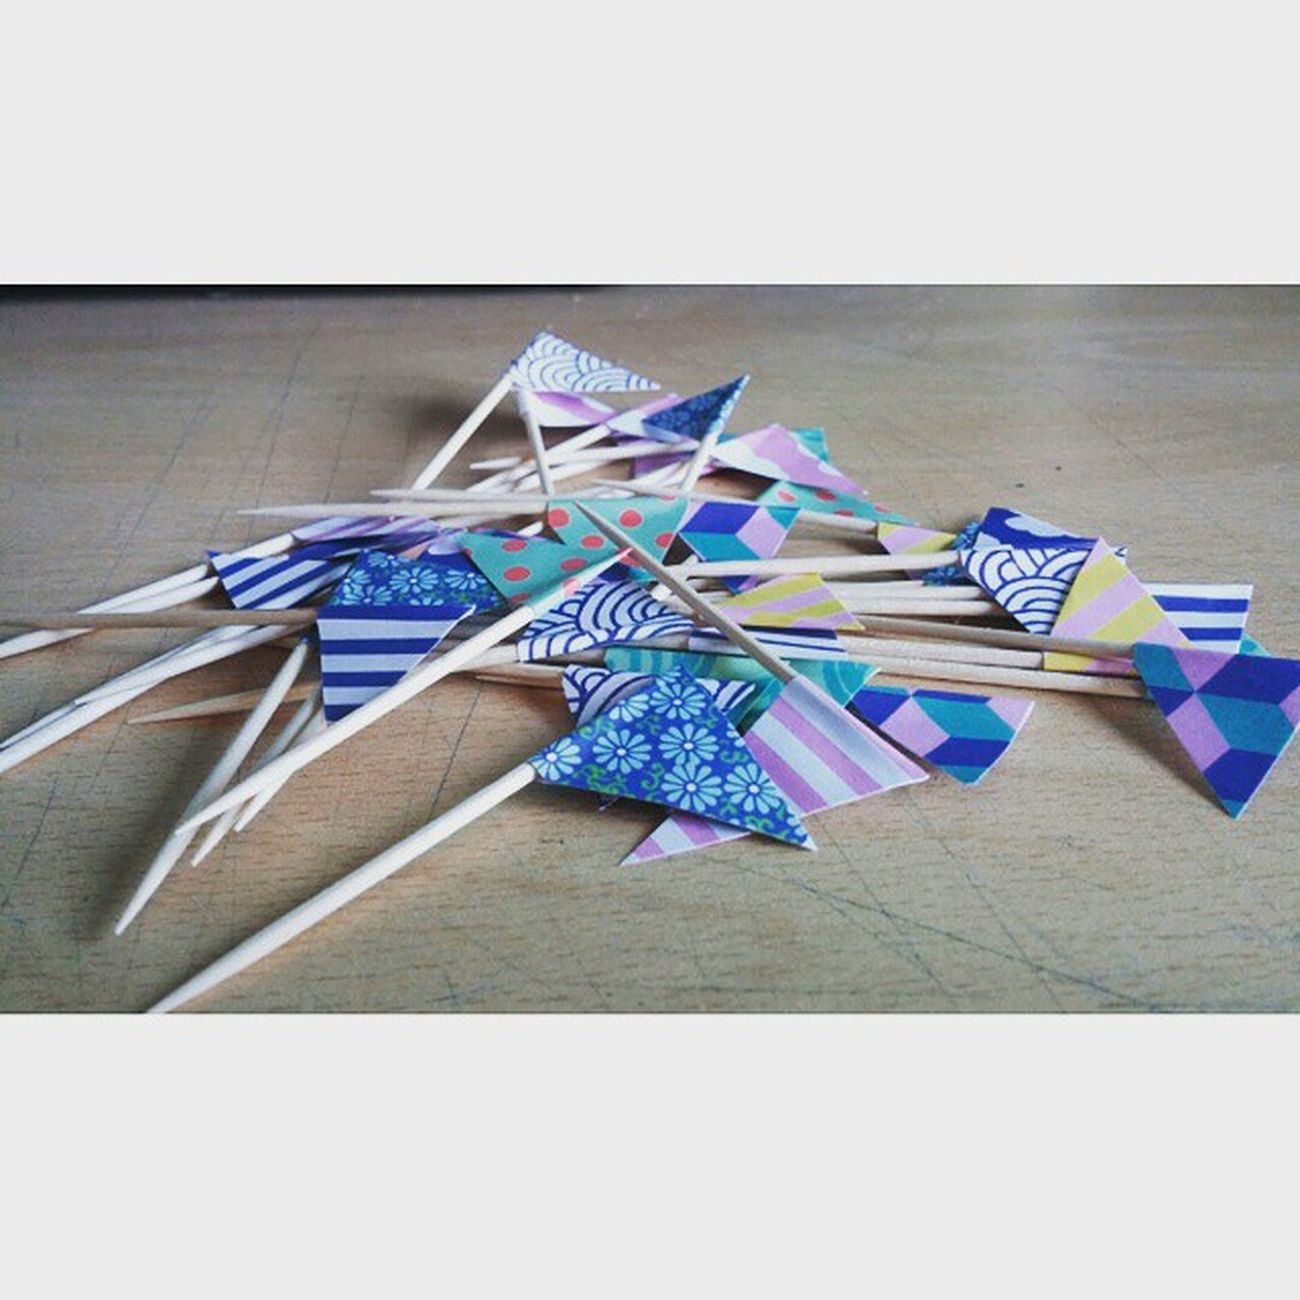 Preparativos para la fiesta de mañana... DIY Party Birthday Banderines Pennants Montico Monticosparty